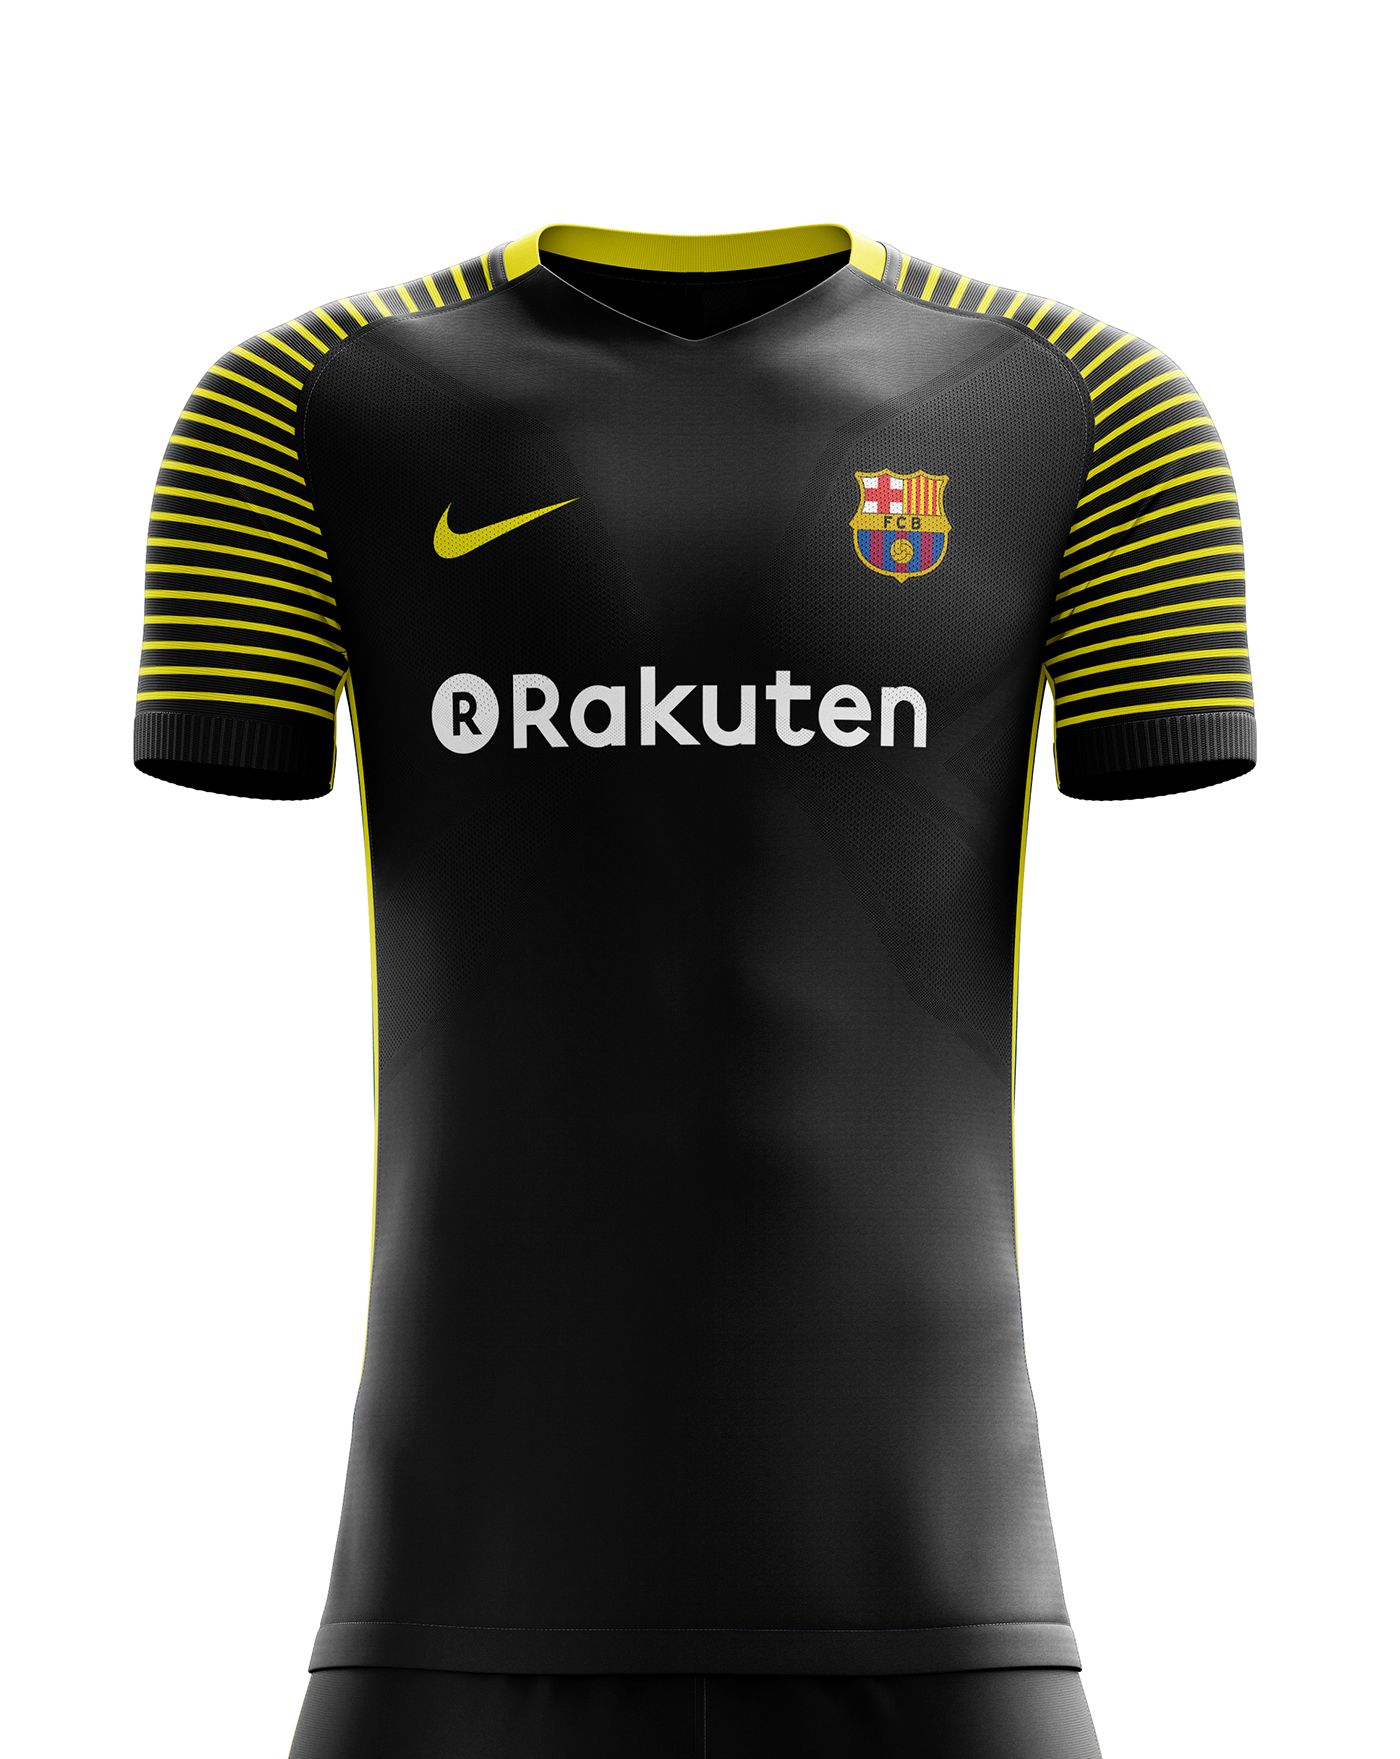 25437f168 I designed football kits for FC Barcelona for the upcoming season 18 19.  the home kit is inspired by shape of ...